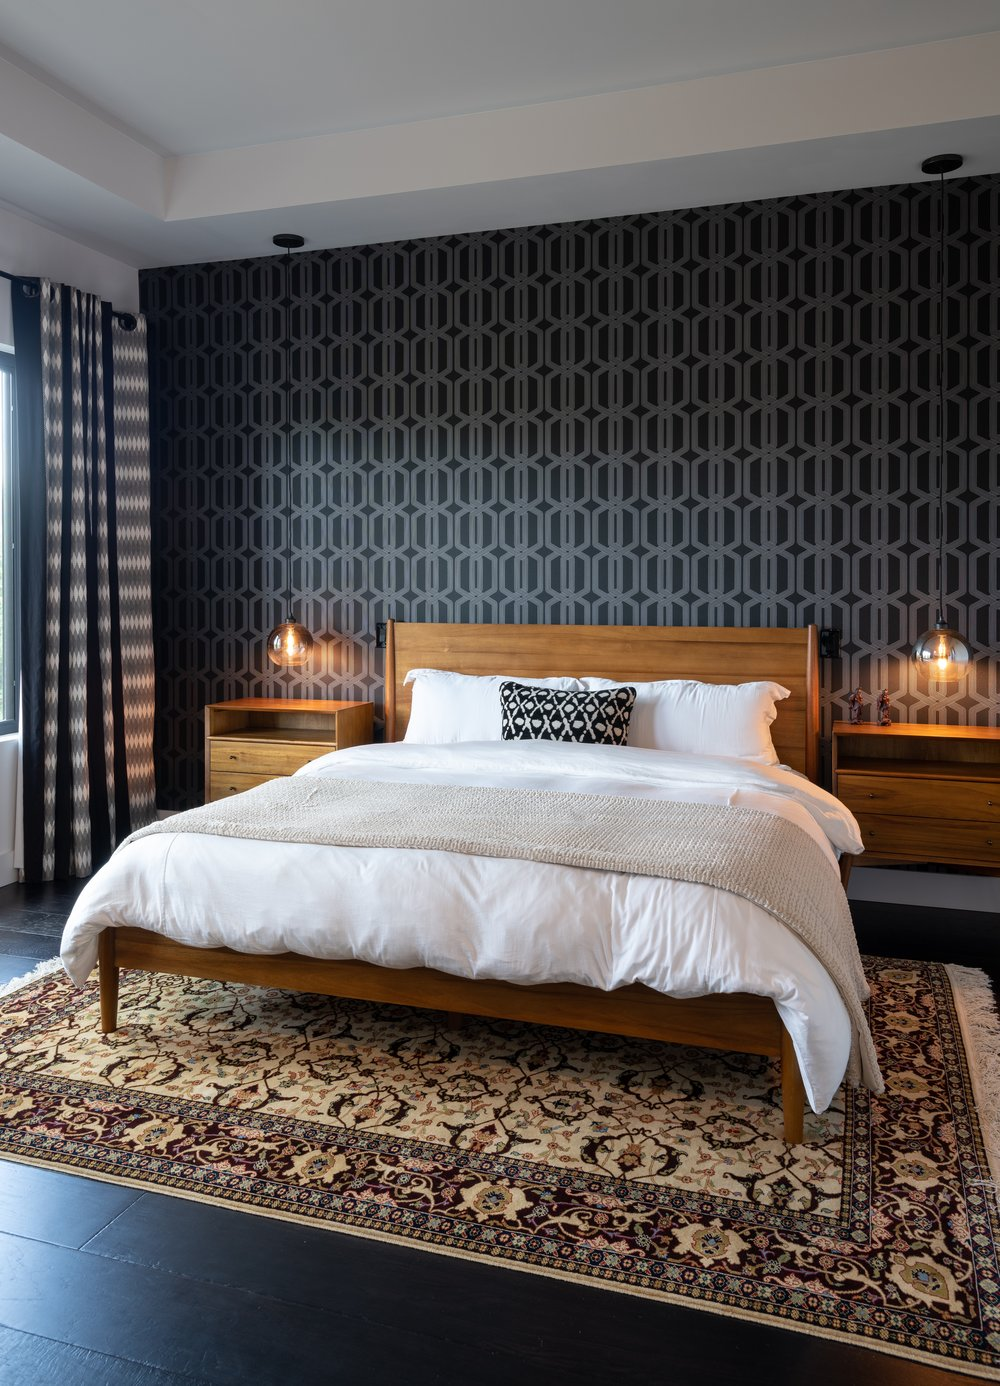 Master Bedroom with Geometric Wallpaper